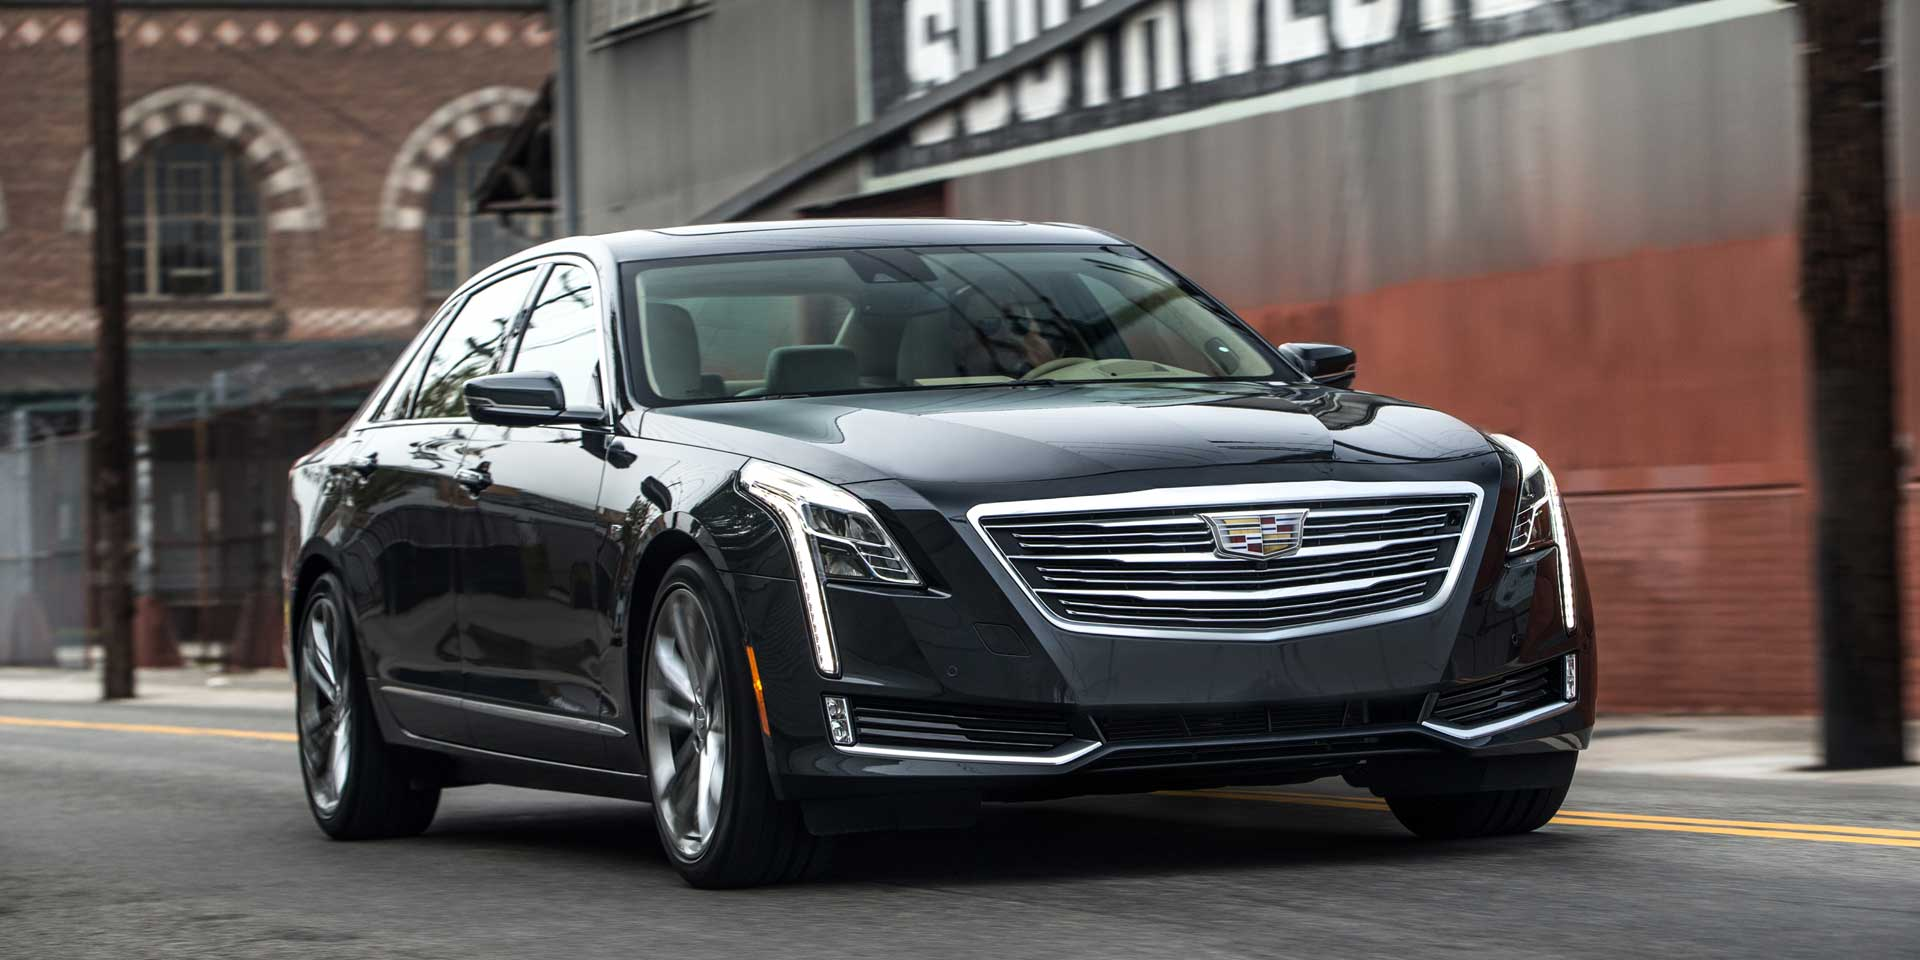 Used Cars For Sale New Cars For Sale Car Dealers Cars Chicago - Cadillac dealers ct